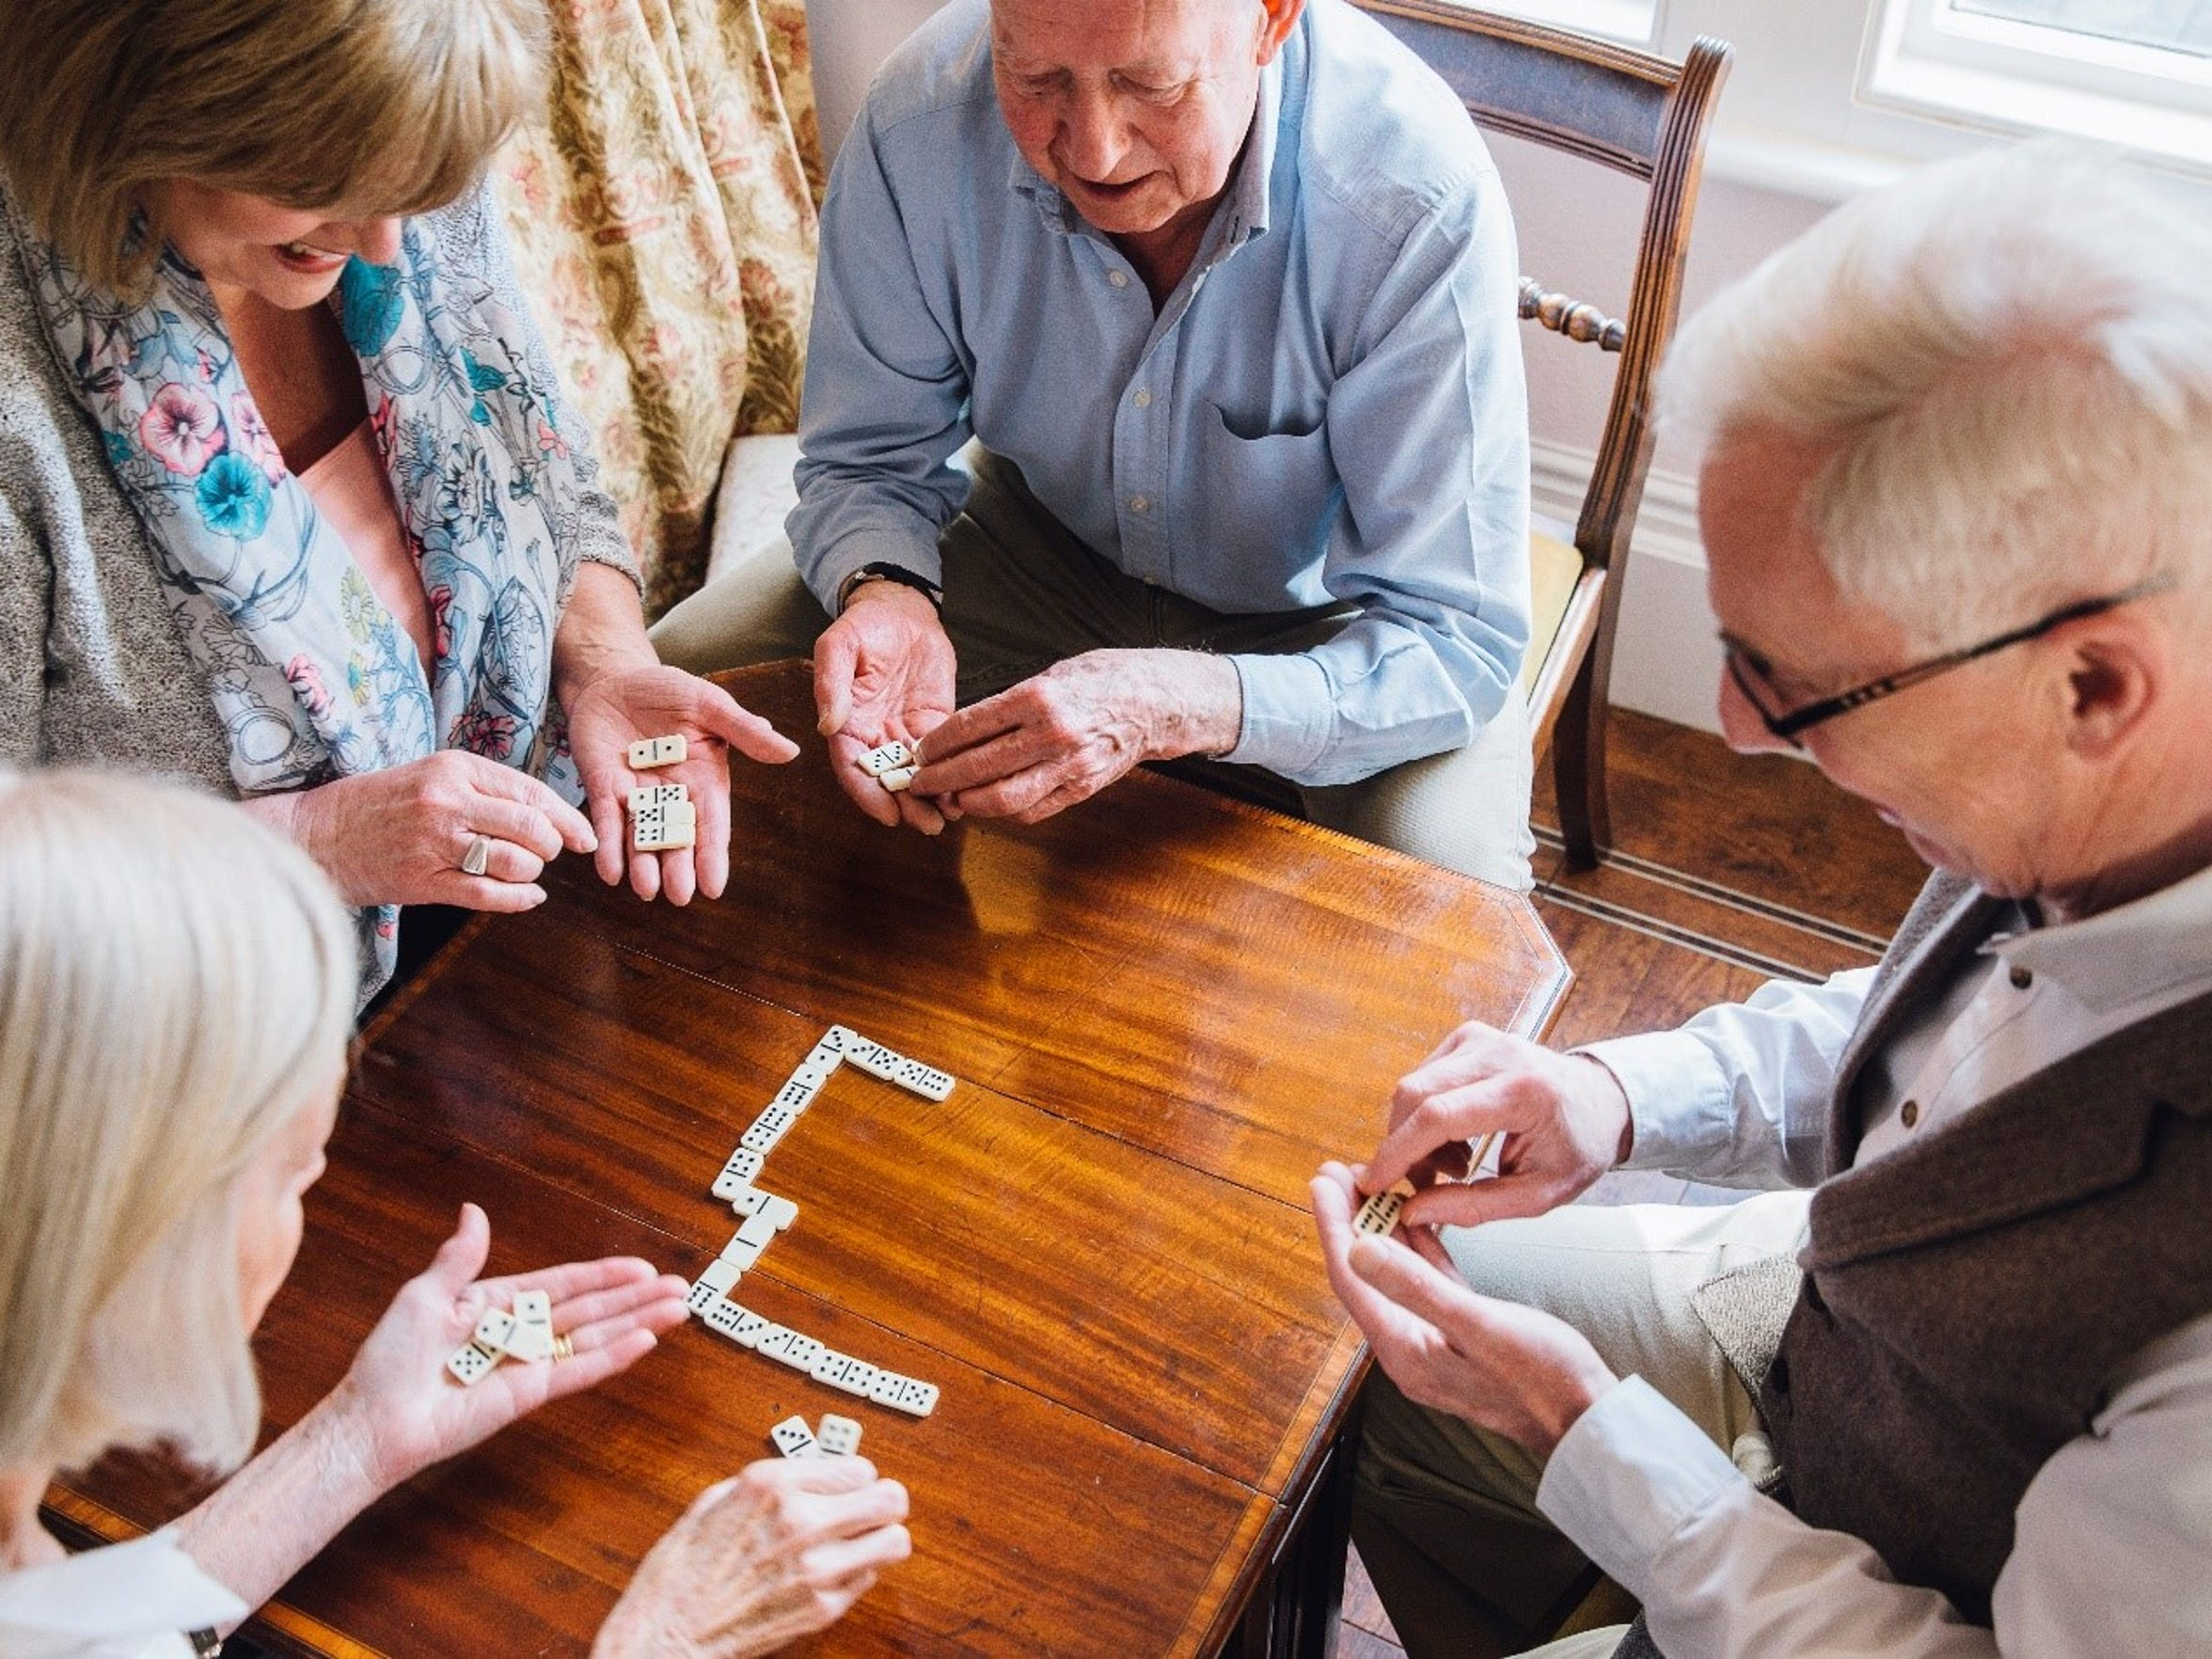 Doctors and caregivers can collaborate on ways to get